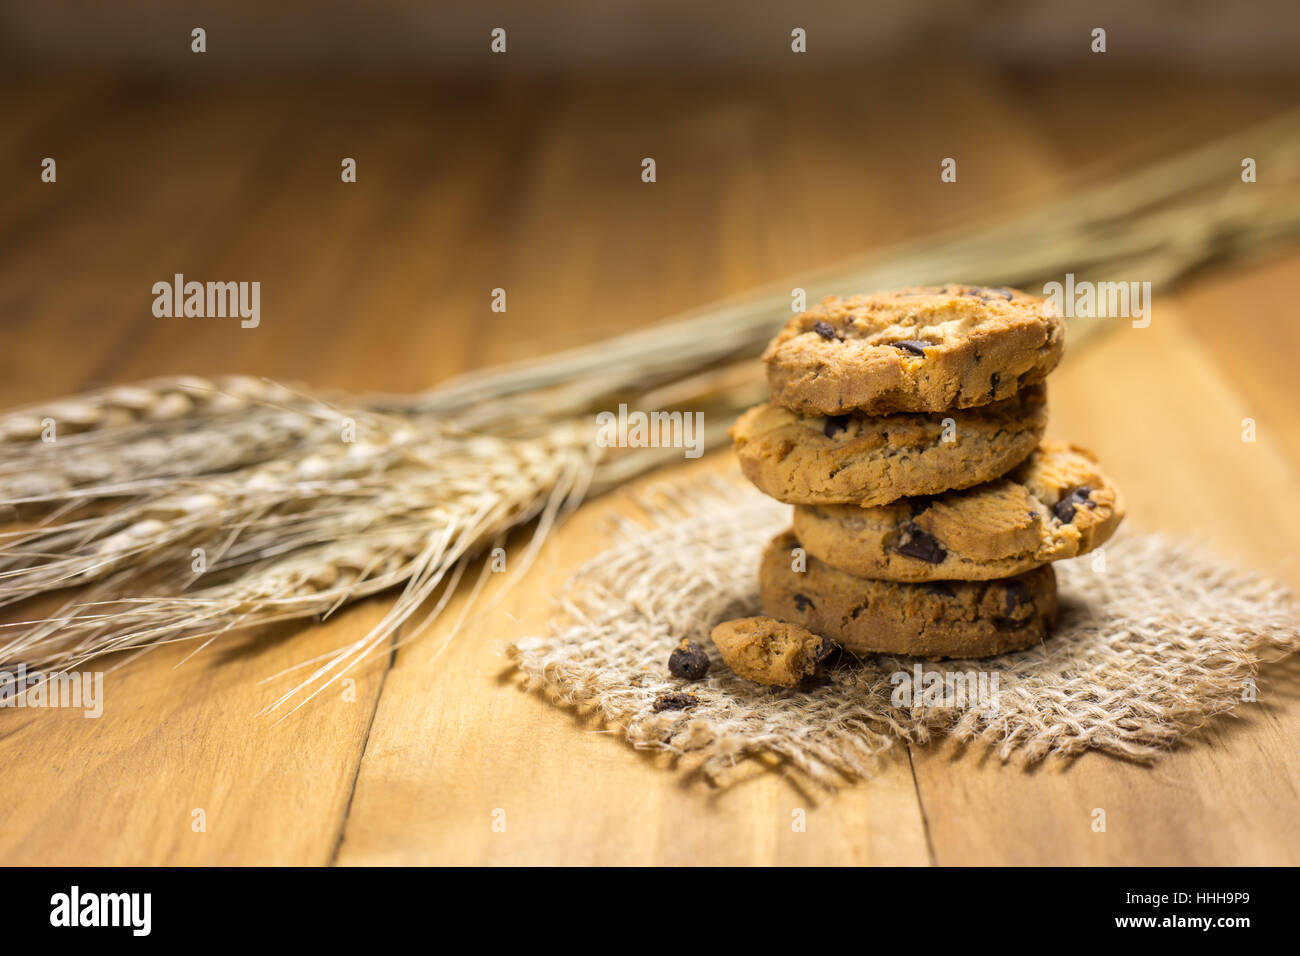 Chocolate cookies on a cloth sack on wood. Chocolate chip cookies and rice malt shot on a brown cloth . - Stock Image